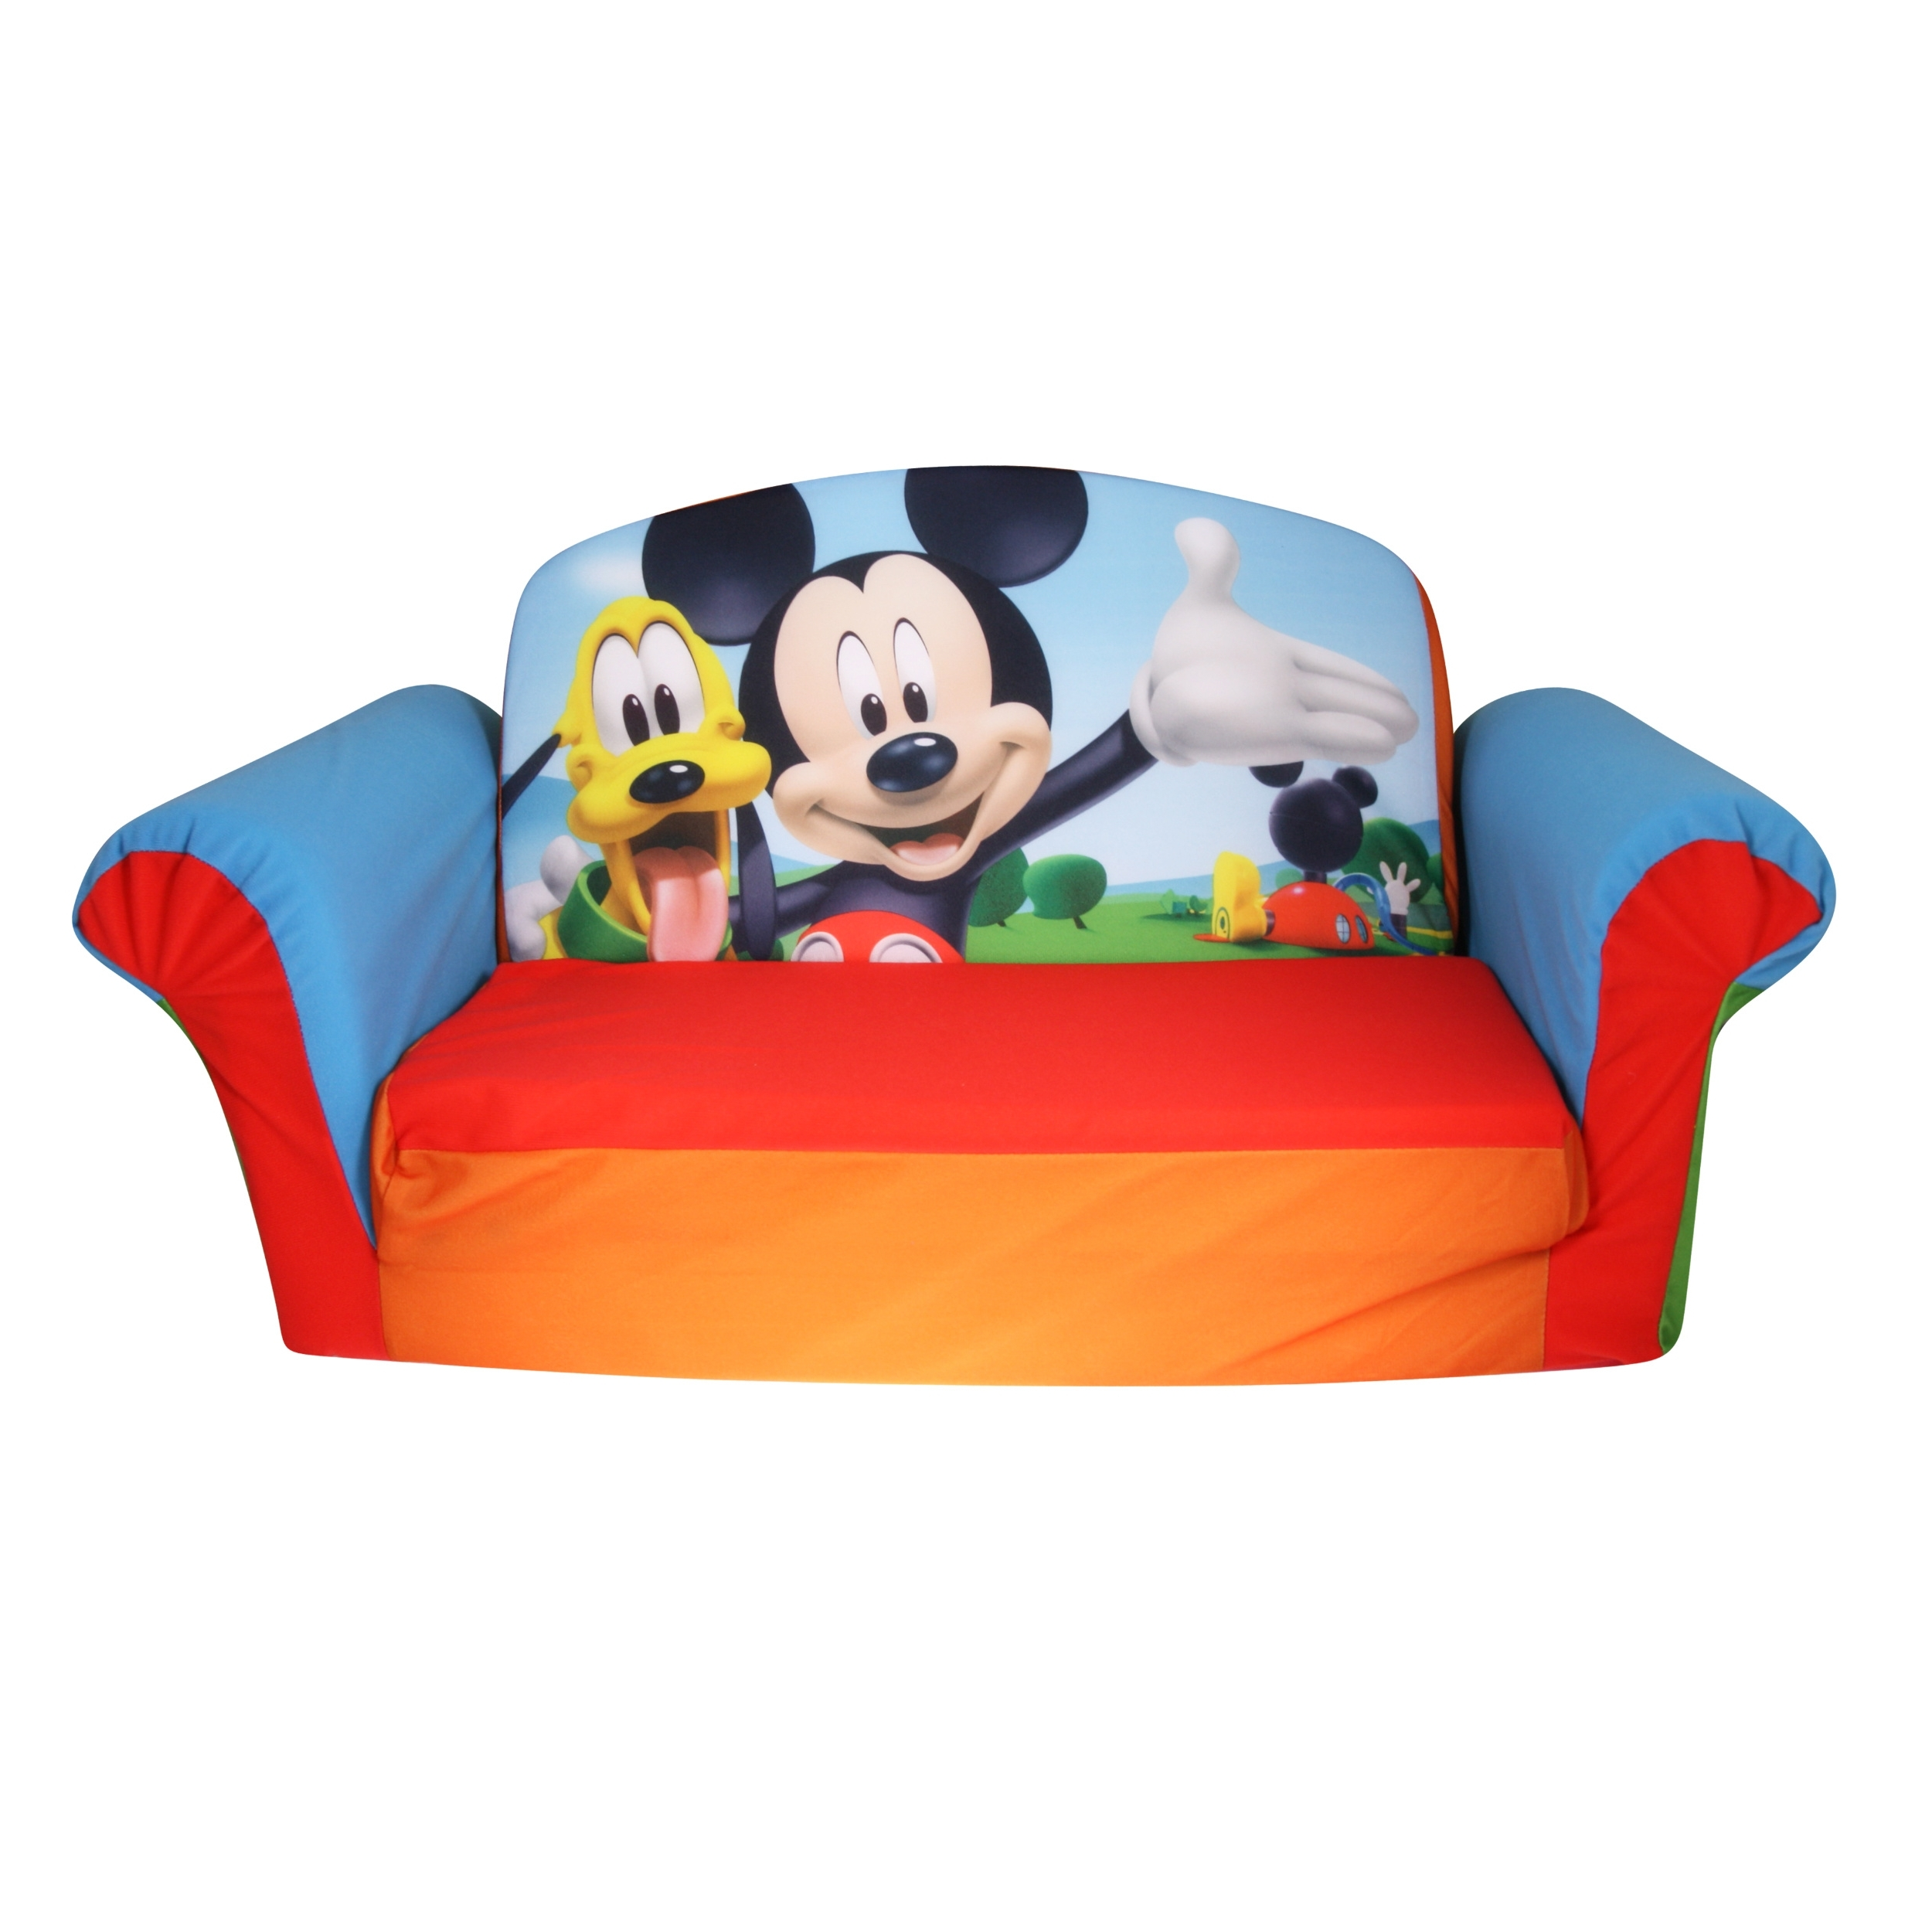 Widely Used Fold Up Sofa Chairs Regarding Disney Mickey Mouse, Toddler 2 In 1 Flip Open Foam Sofa Chair (View 15 of 15)